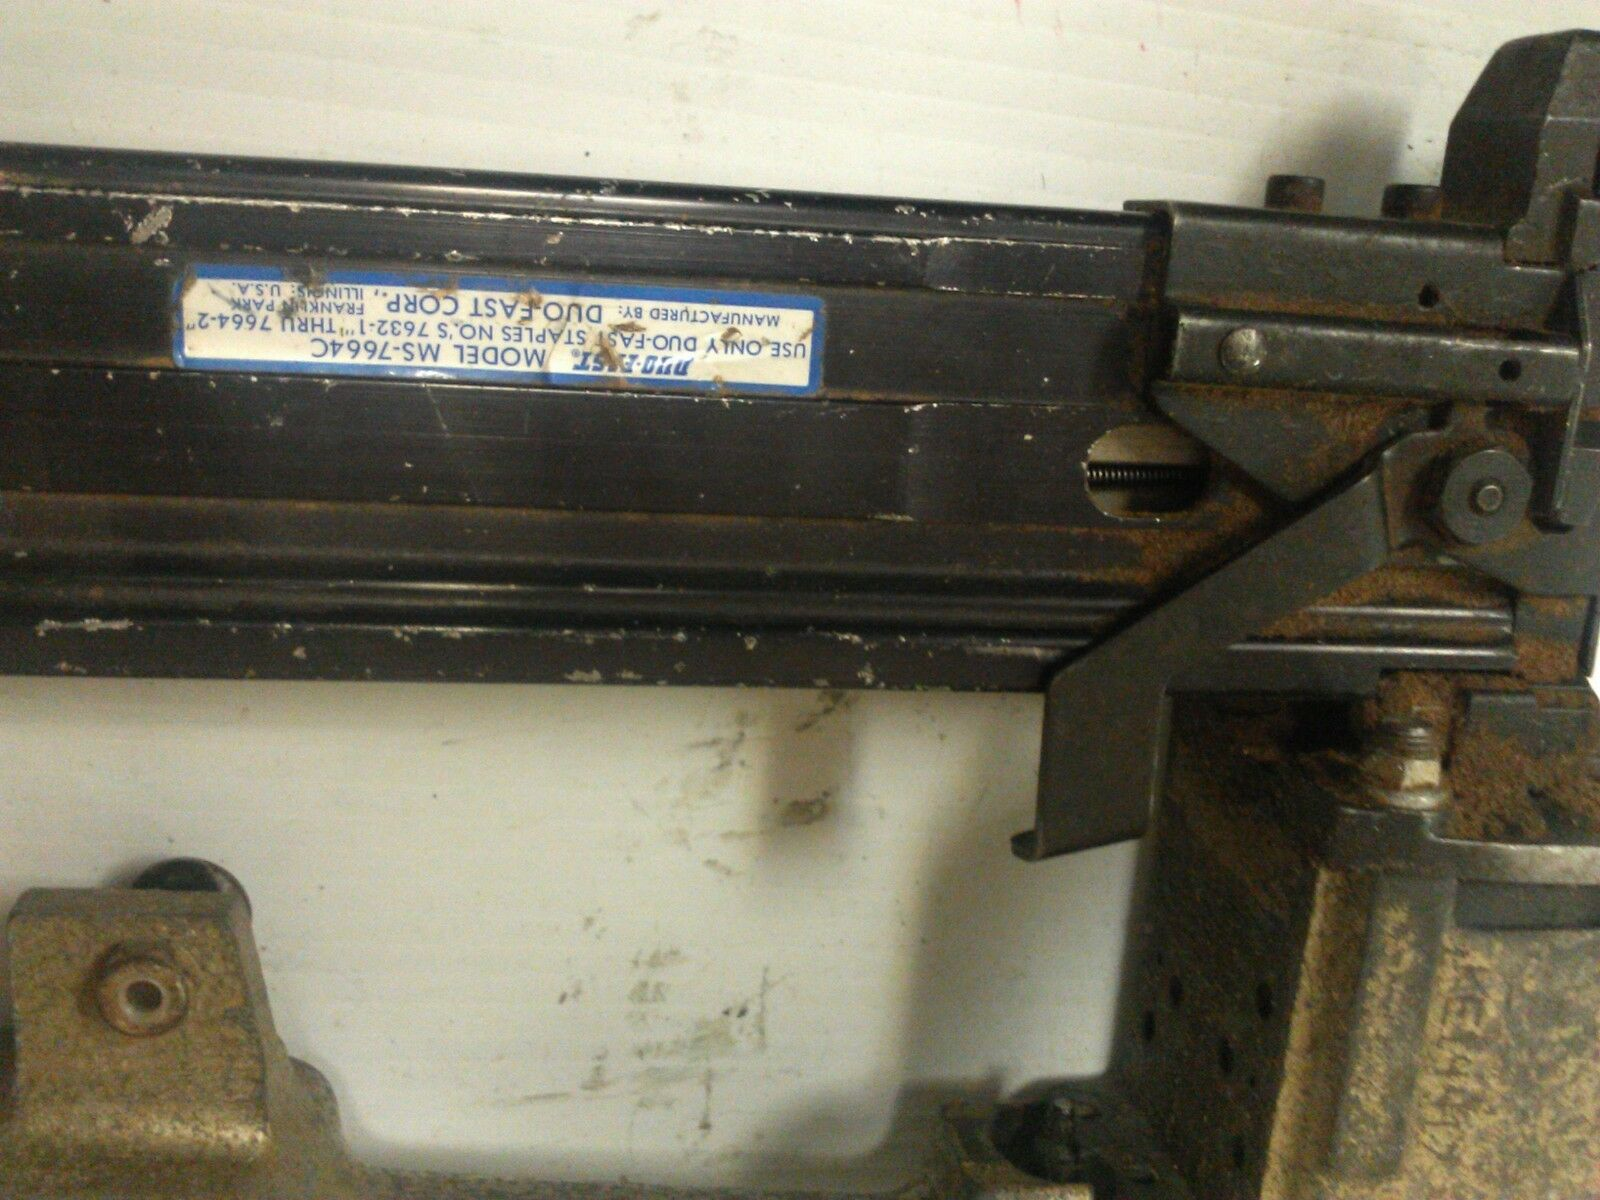 USED HOUSING FOR FOR FOR DUOFAST MS-7664C SP-312 STAPELR-ENTIRE PICTURE NOT FOR SALE da8522